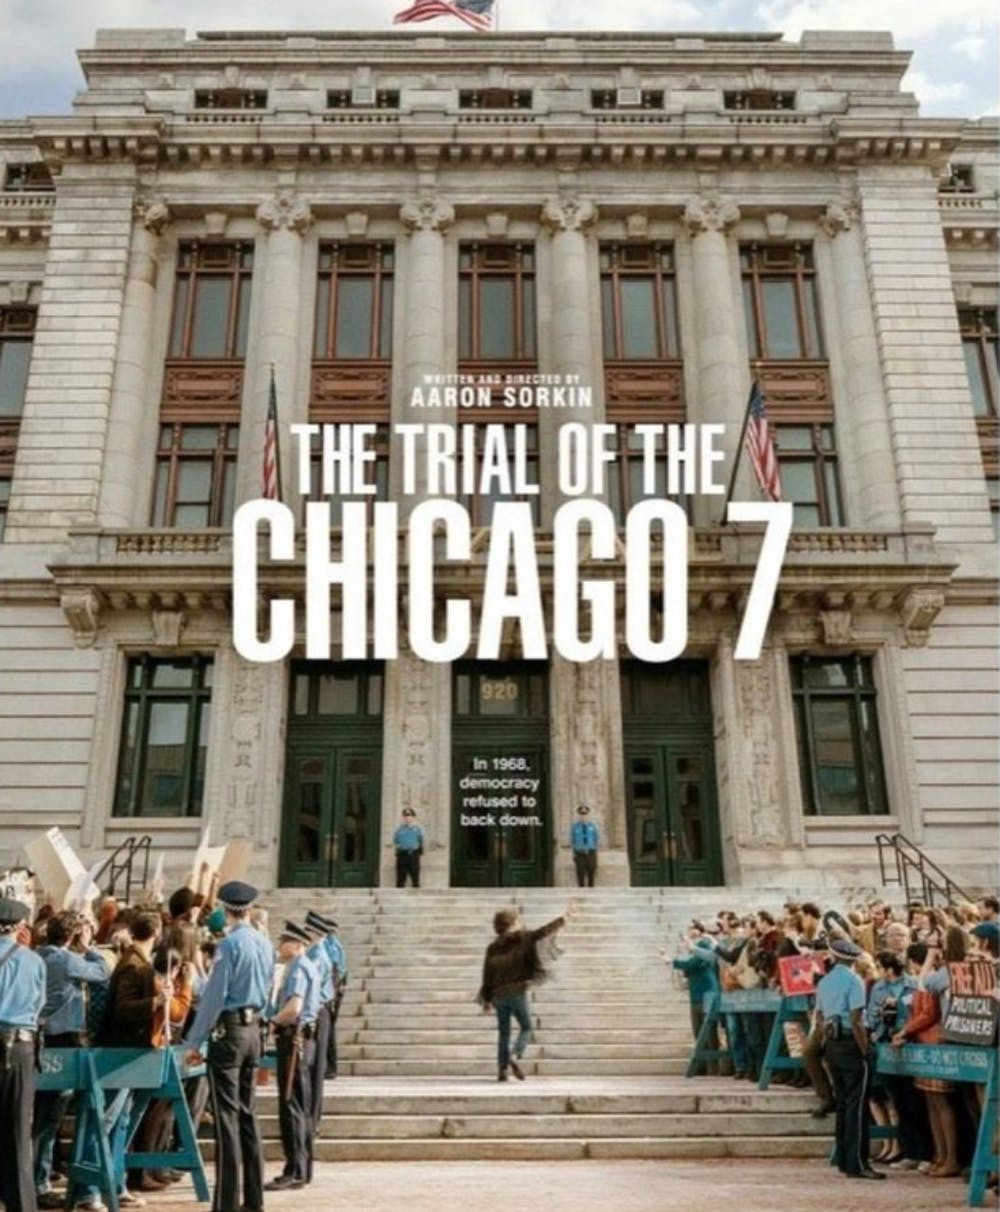 Film Review: 'The Trial of the Chicago 7' brings a relatively unknown story to life